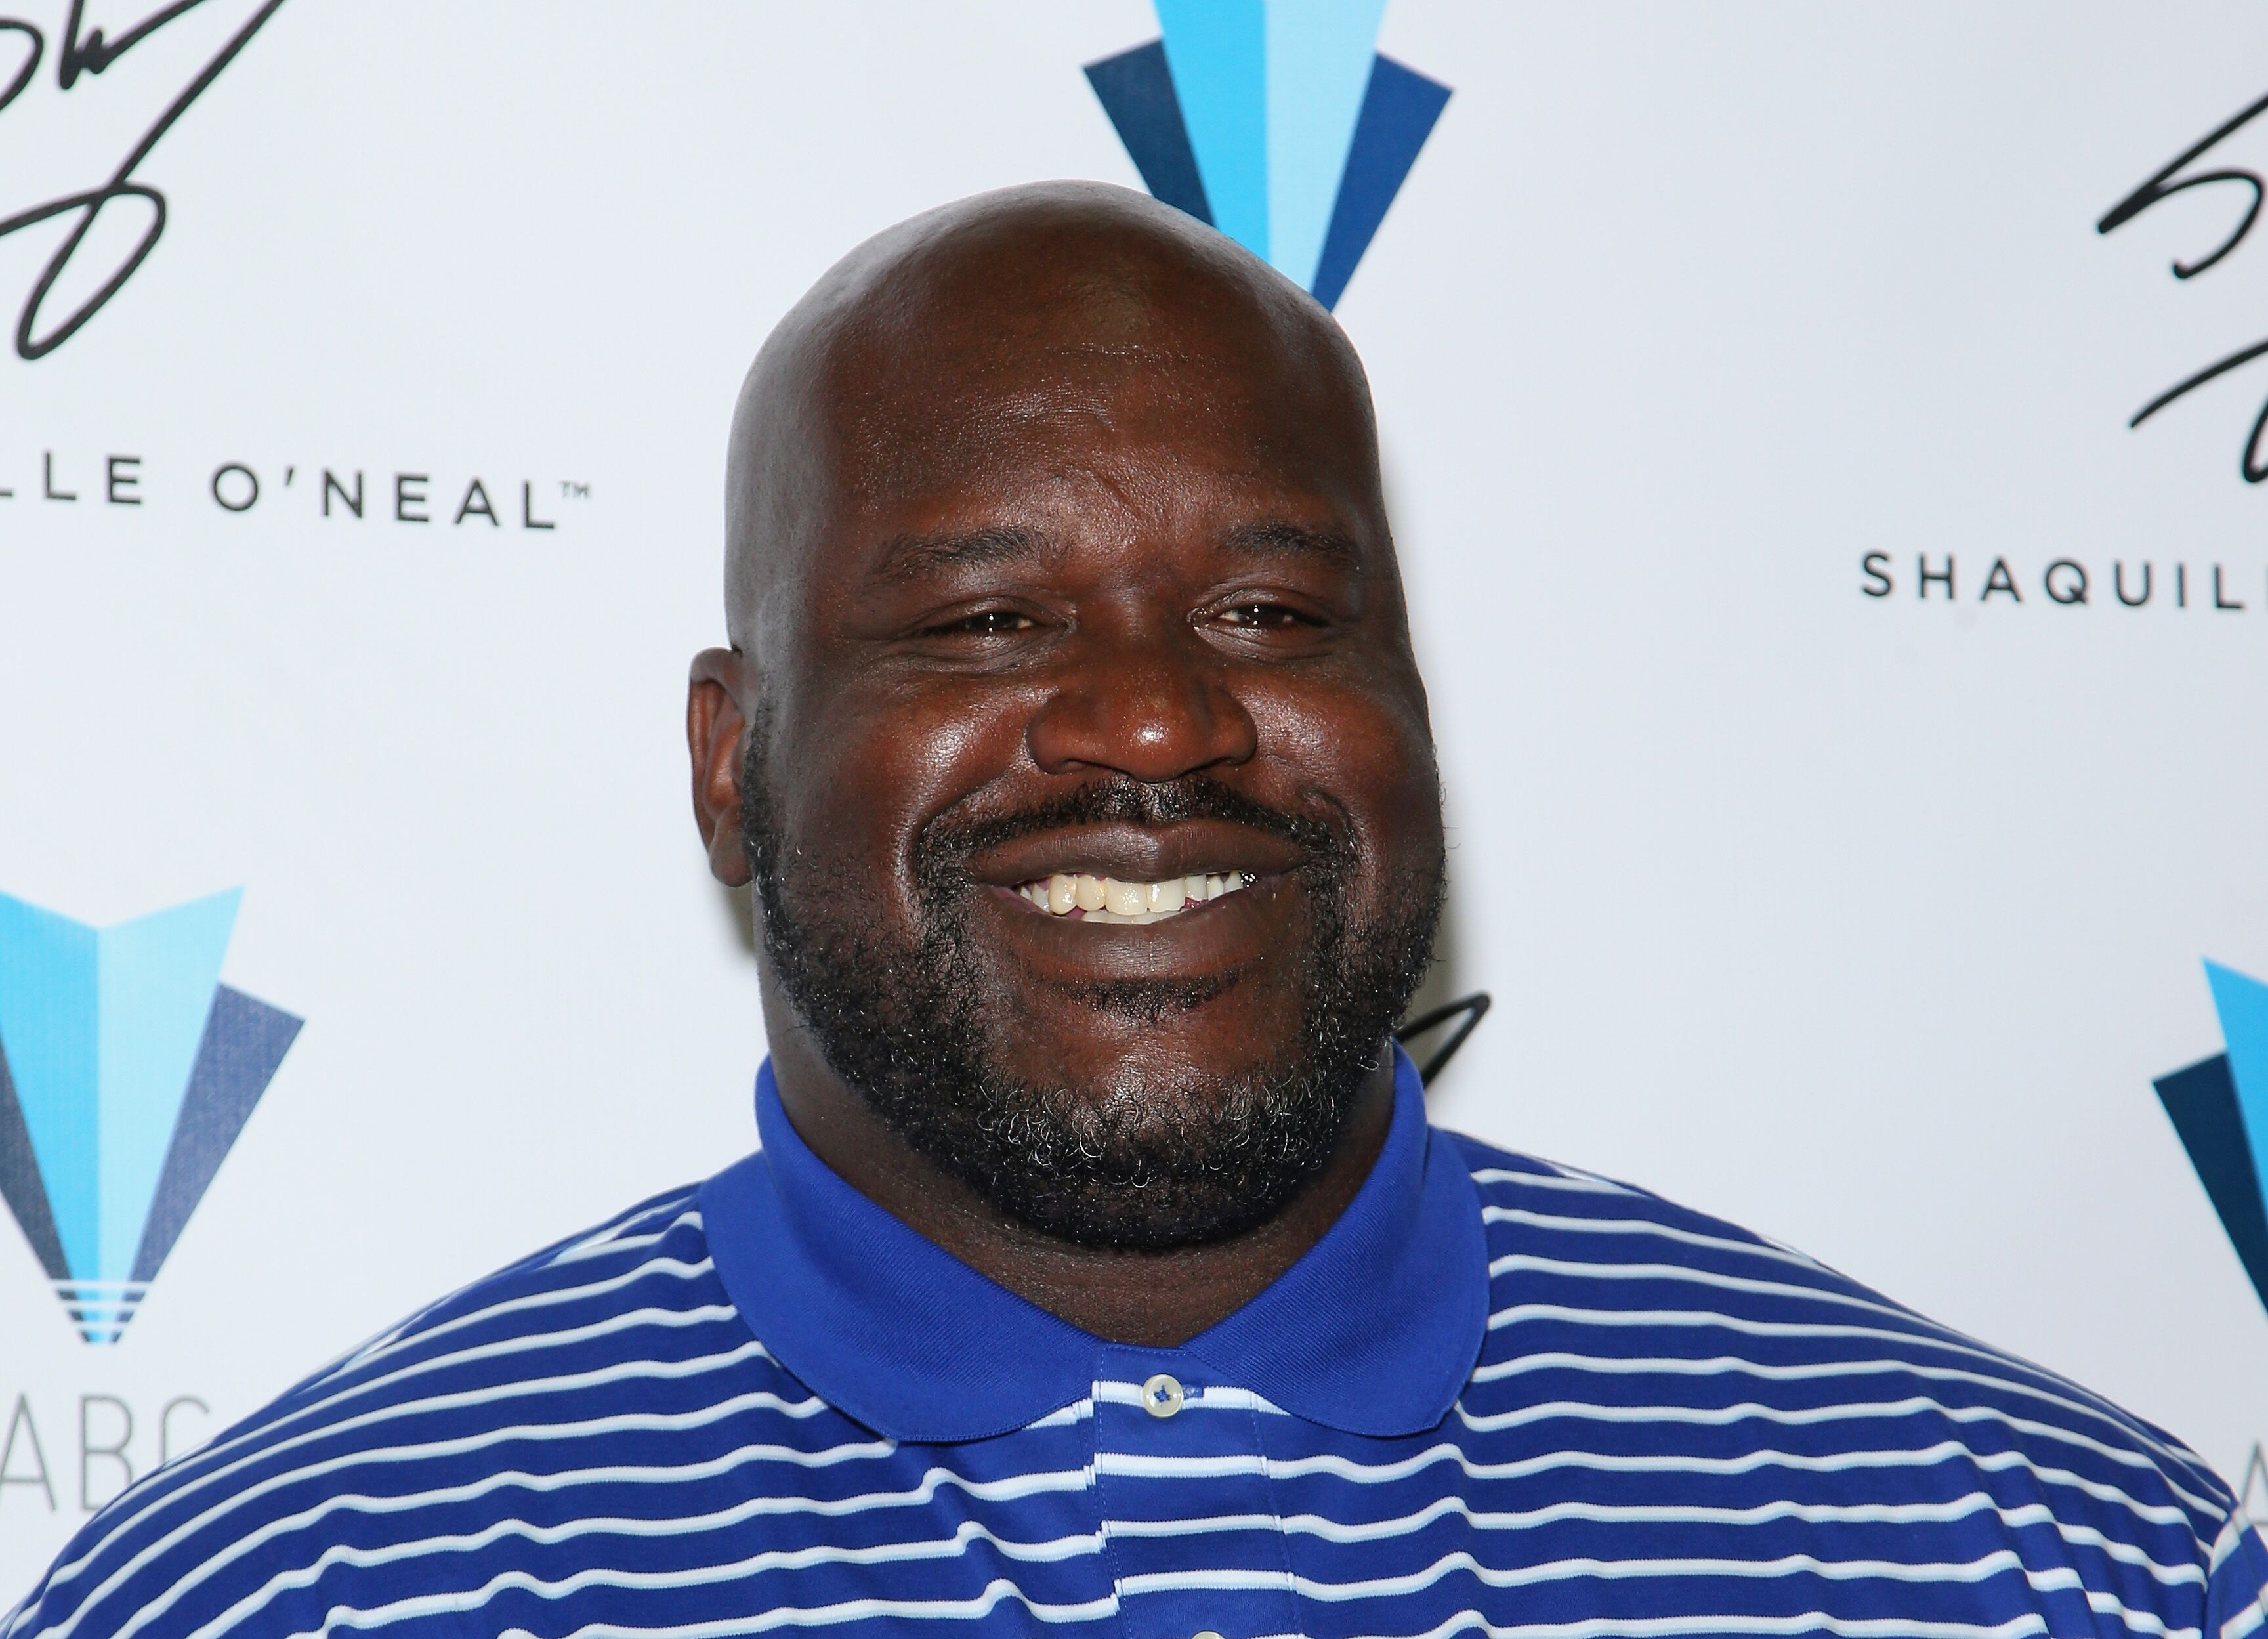 Shaquille O'Neal poses in the Authentic Brands Group booth during the Licensing Expo. | Source: Getty Images